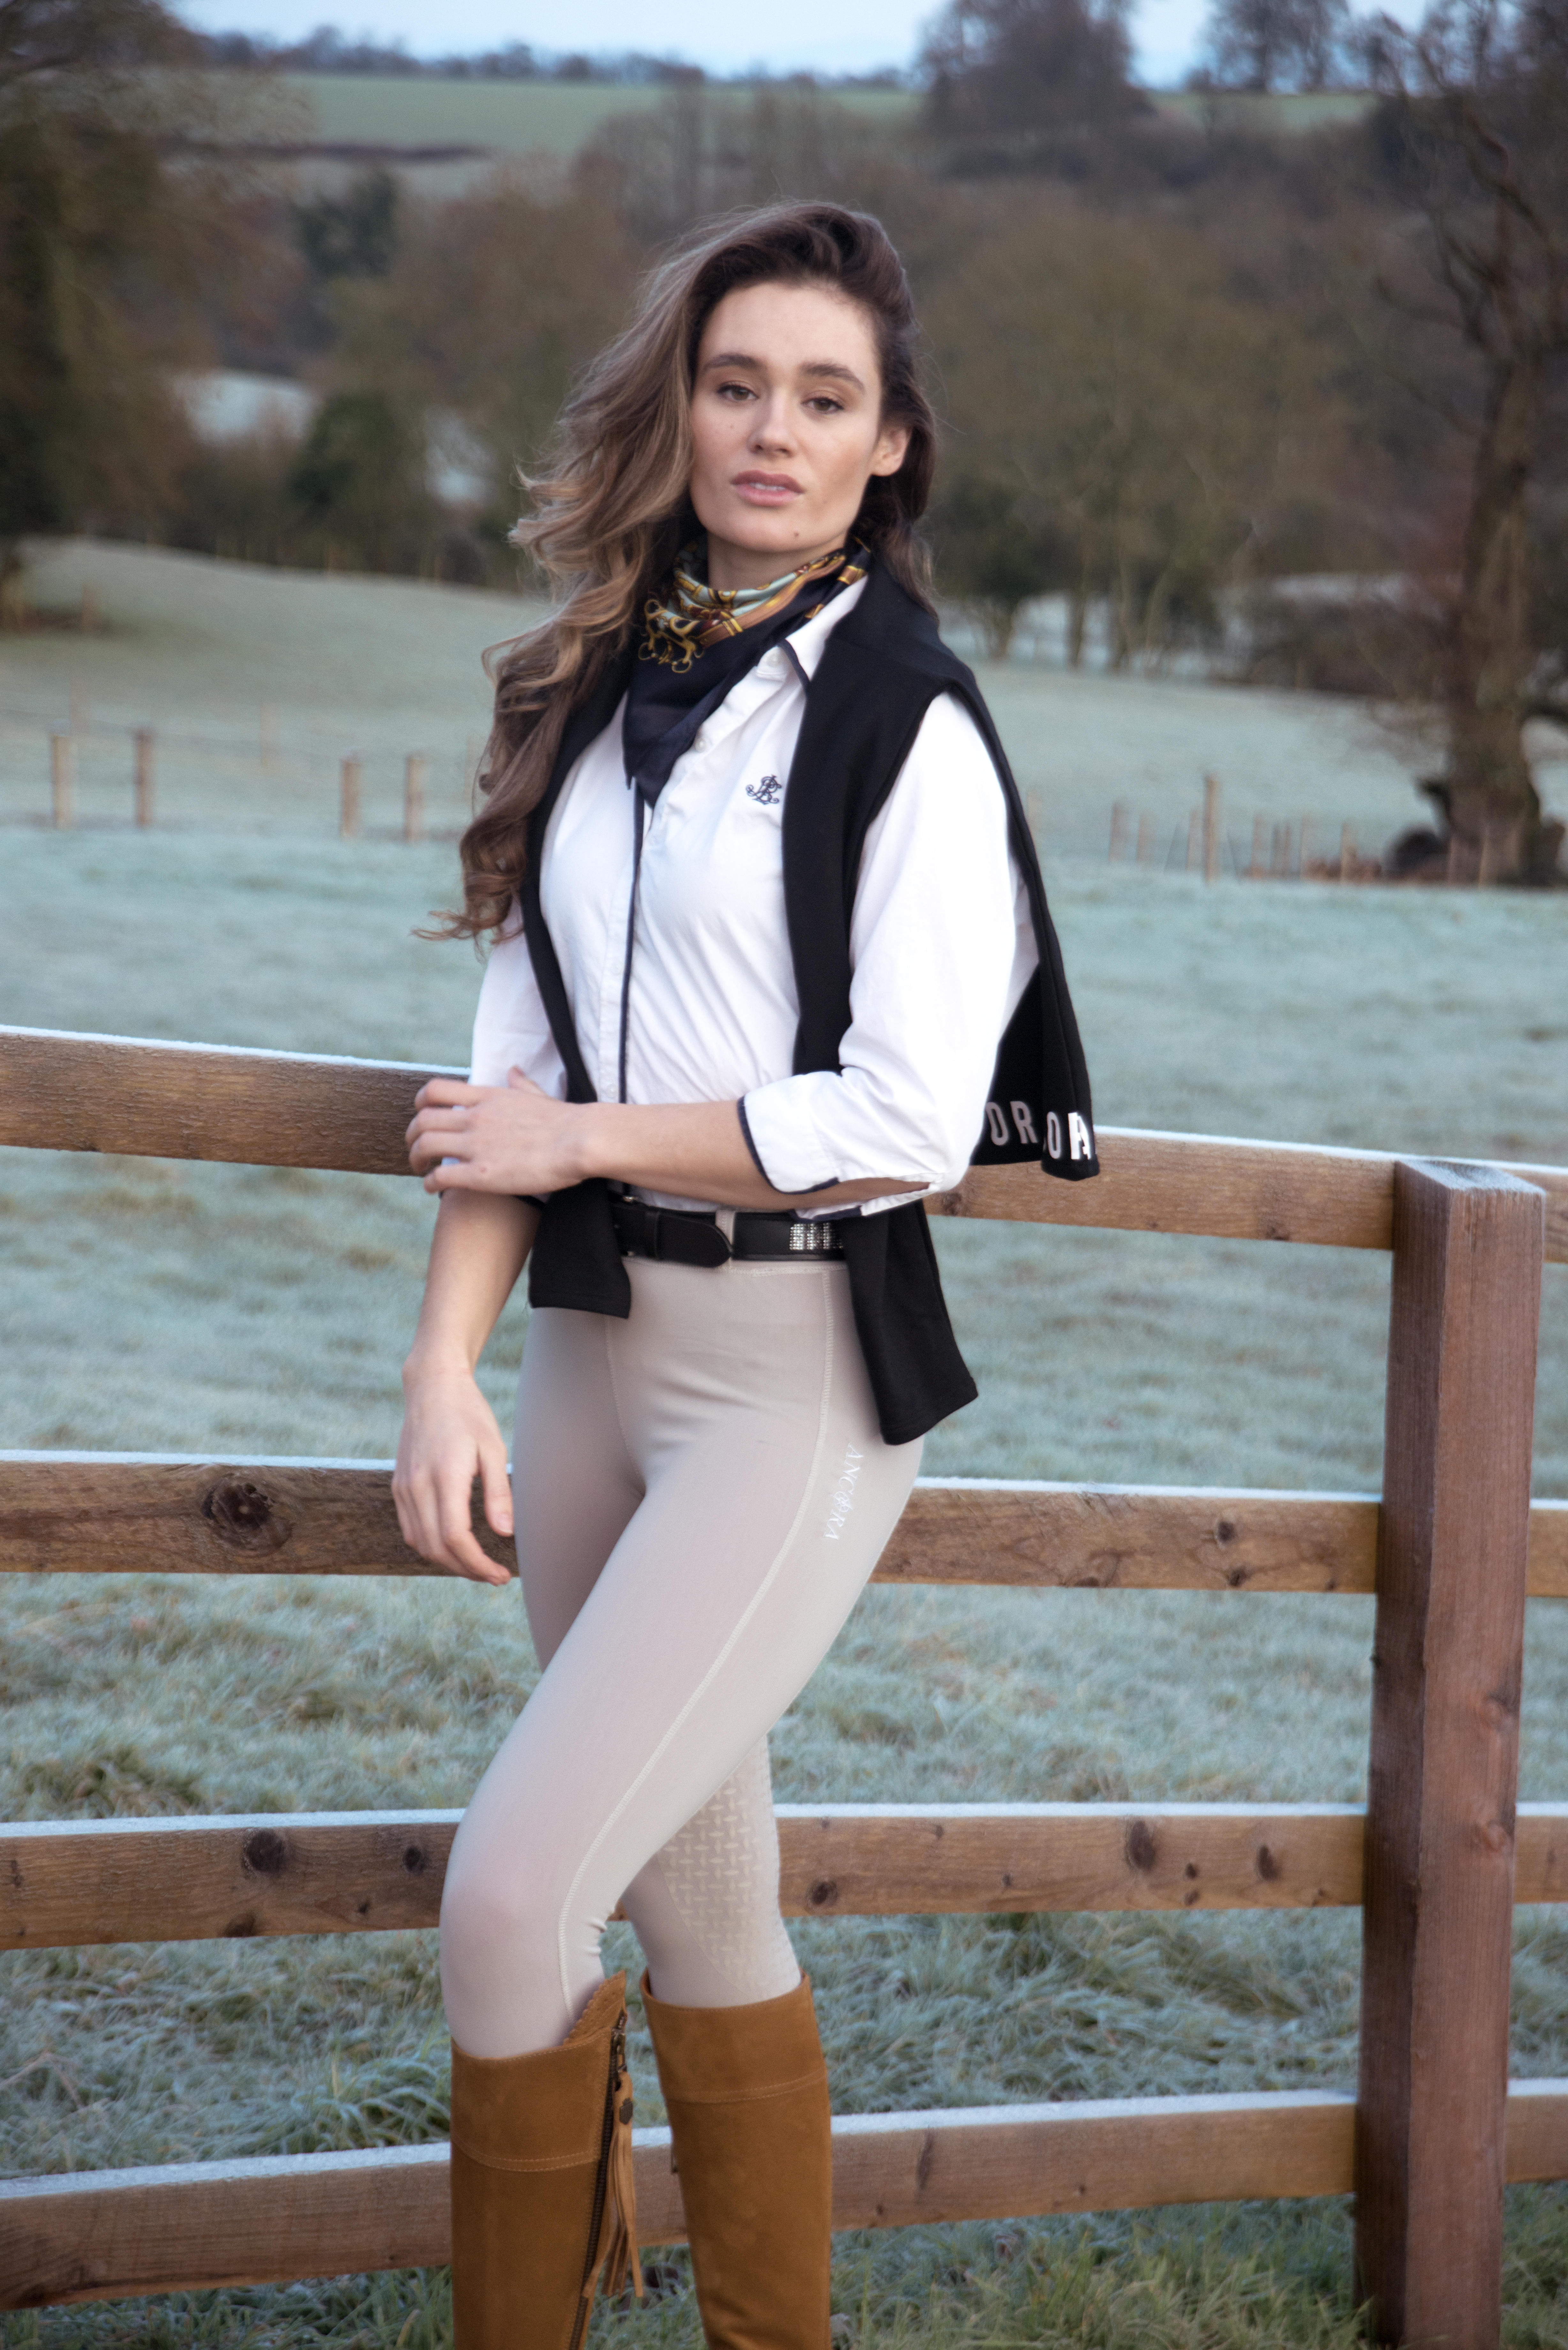 Autumn/Winter Fashion Photoshoot in the Cotswolds Modelled by Laura Thyer by Grace Delnevo Cotswold Fashion Photographer for Ancora Equestrian